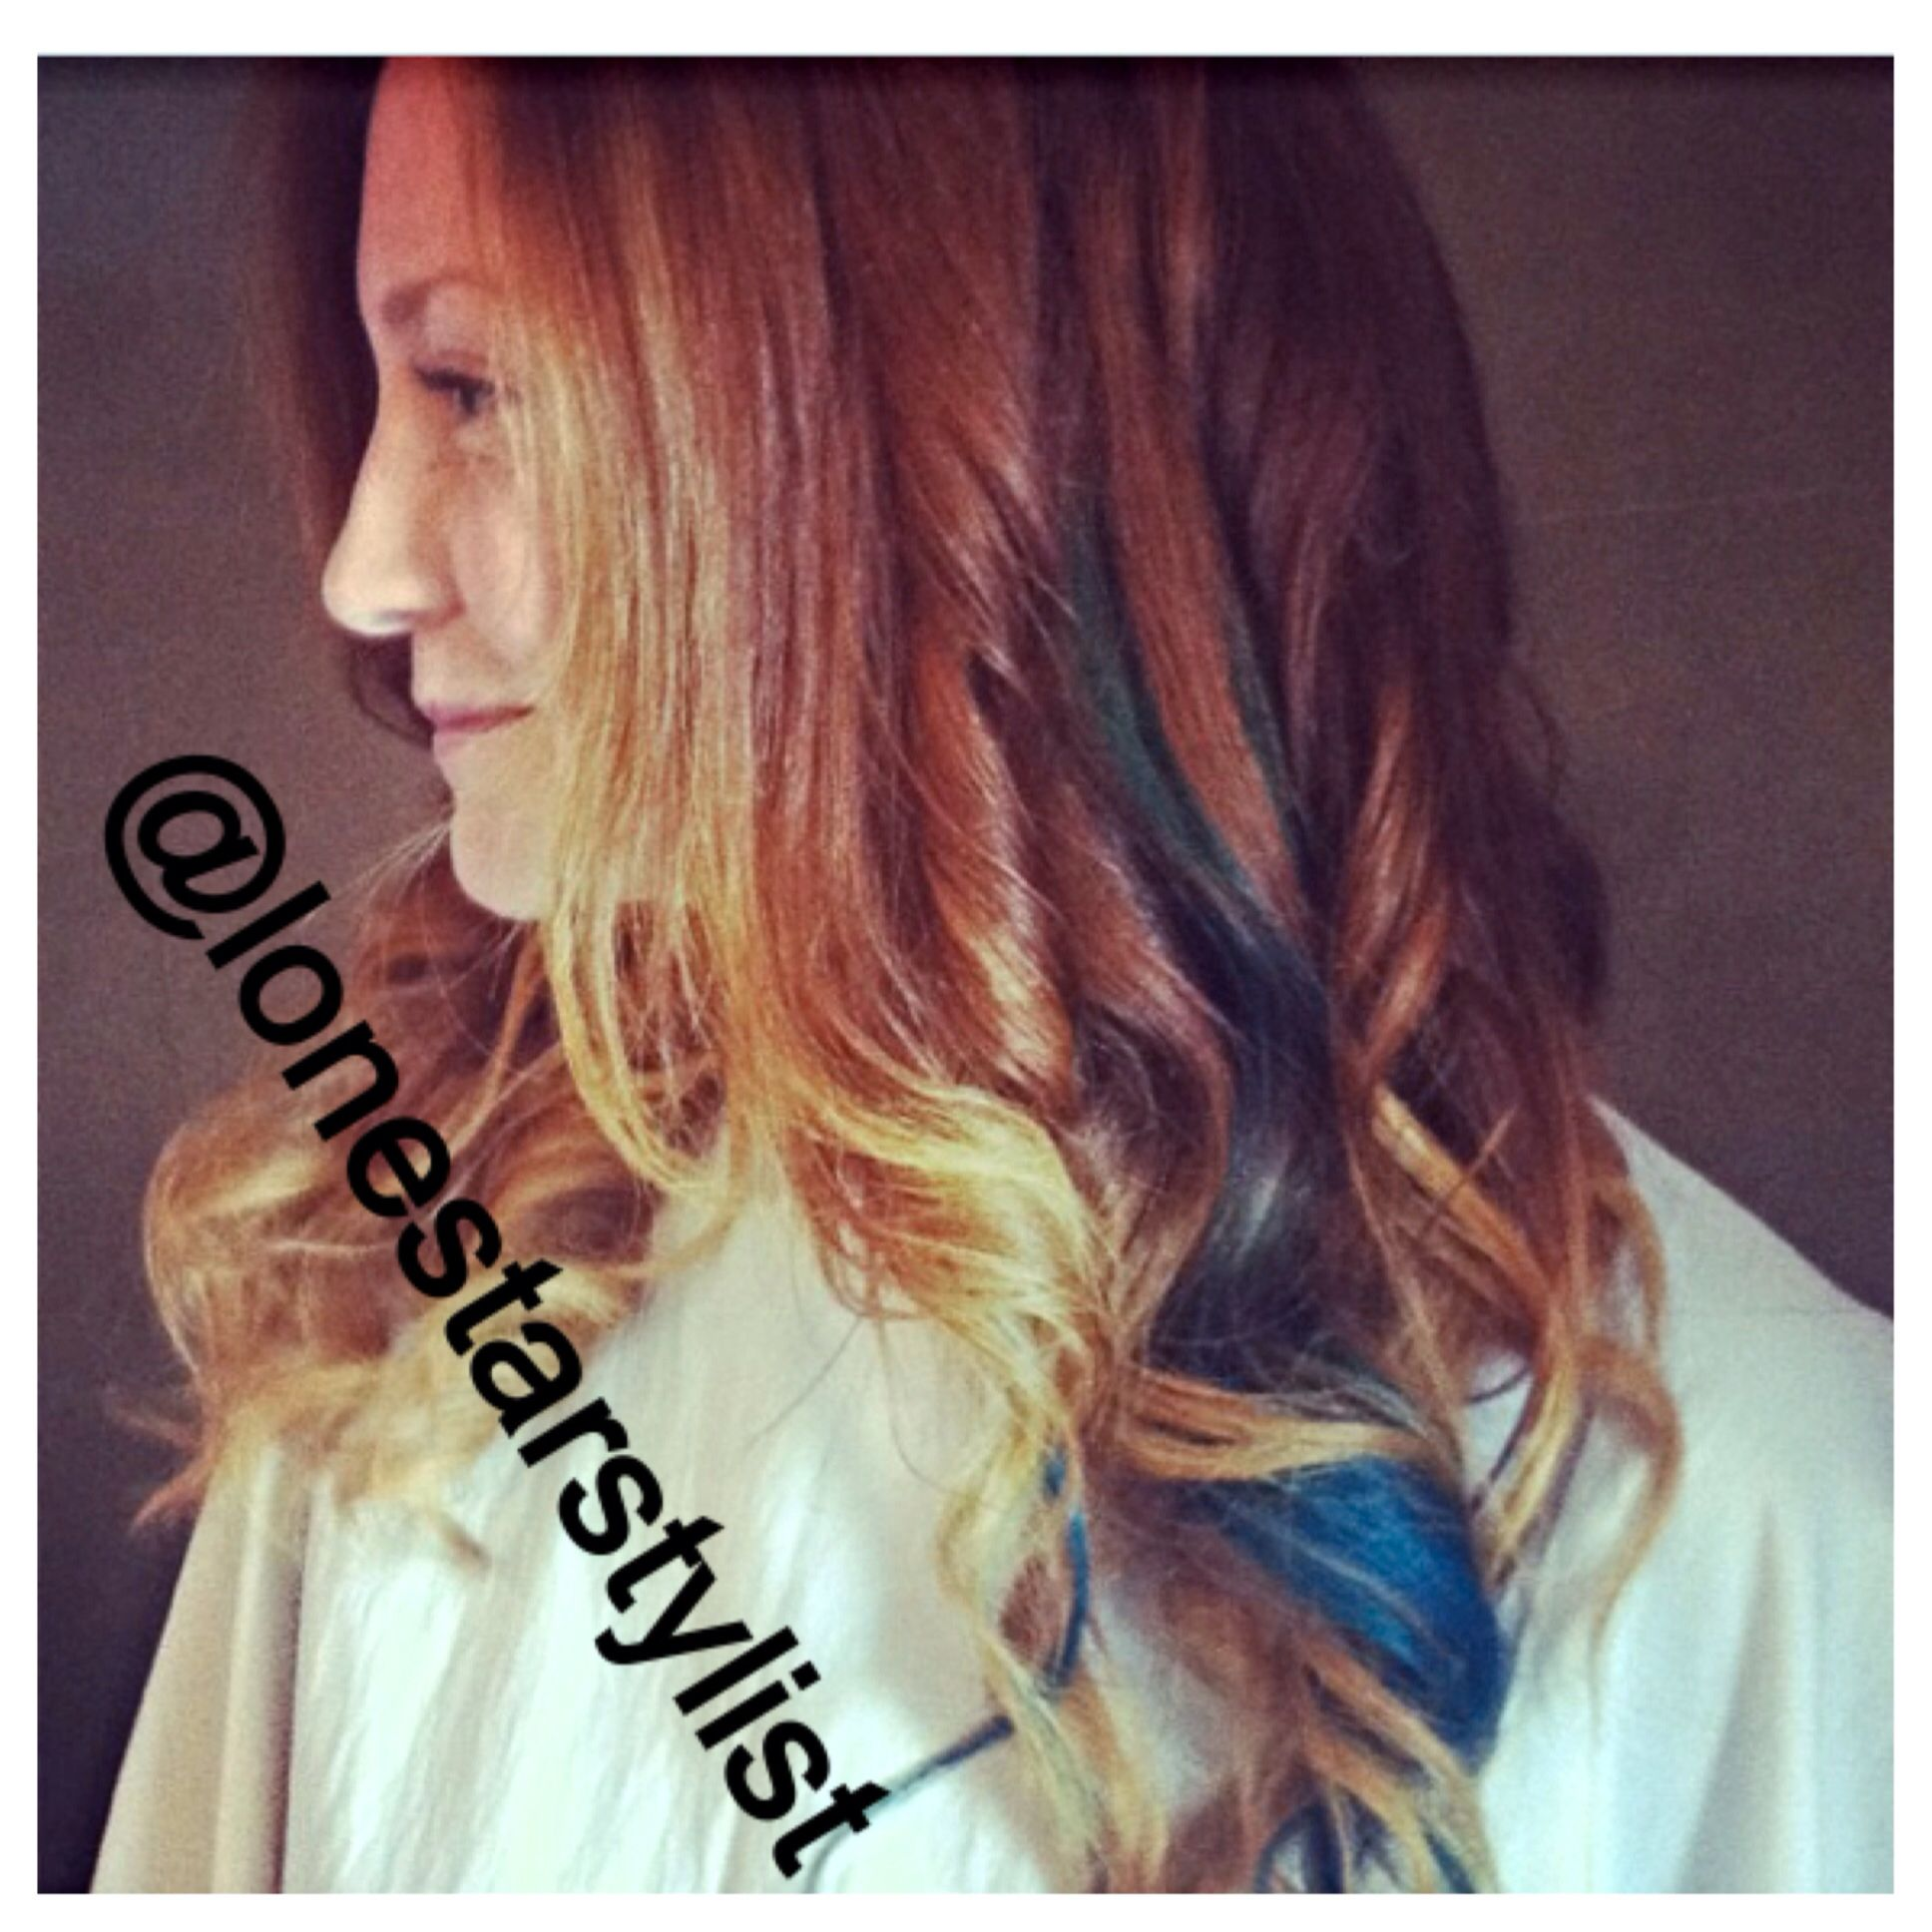 Mermaid Hair Ombre Balayage Highlights On Red Hair With A Multi